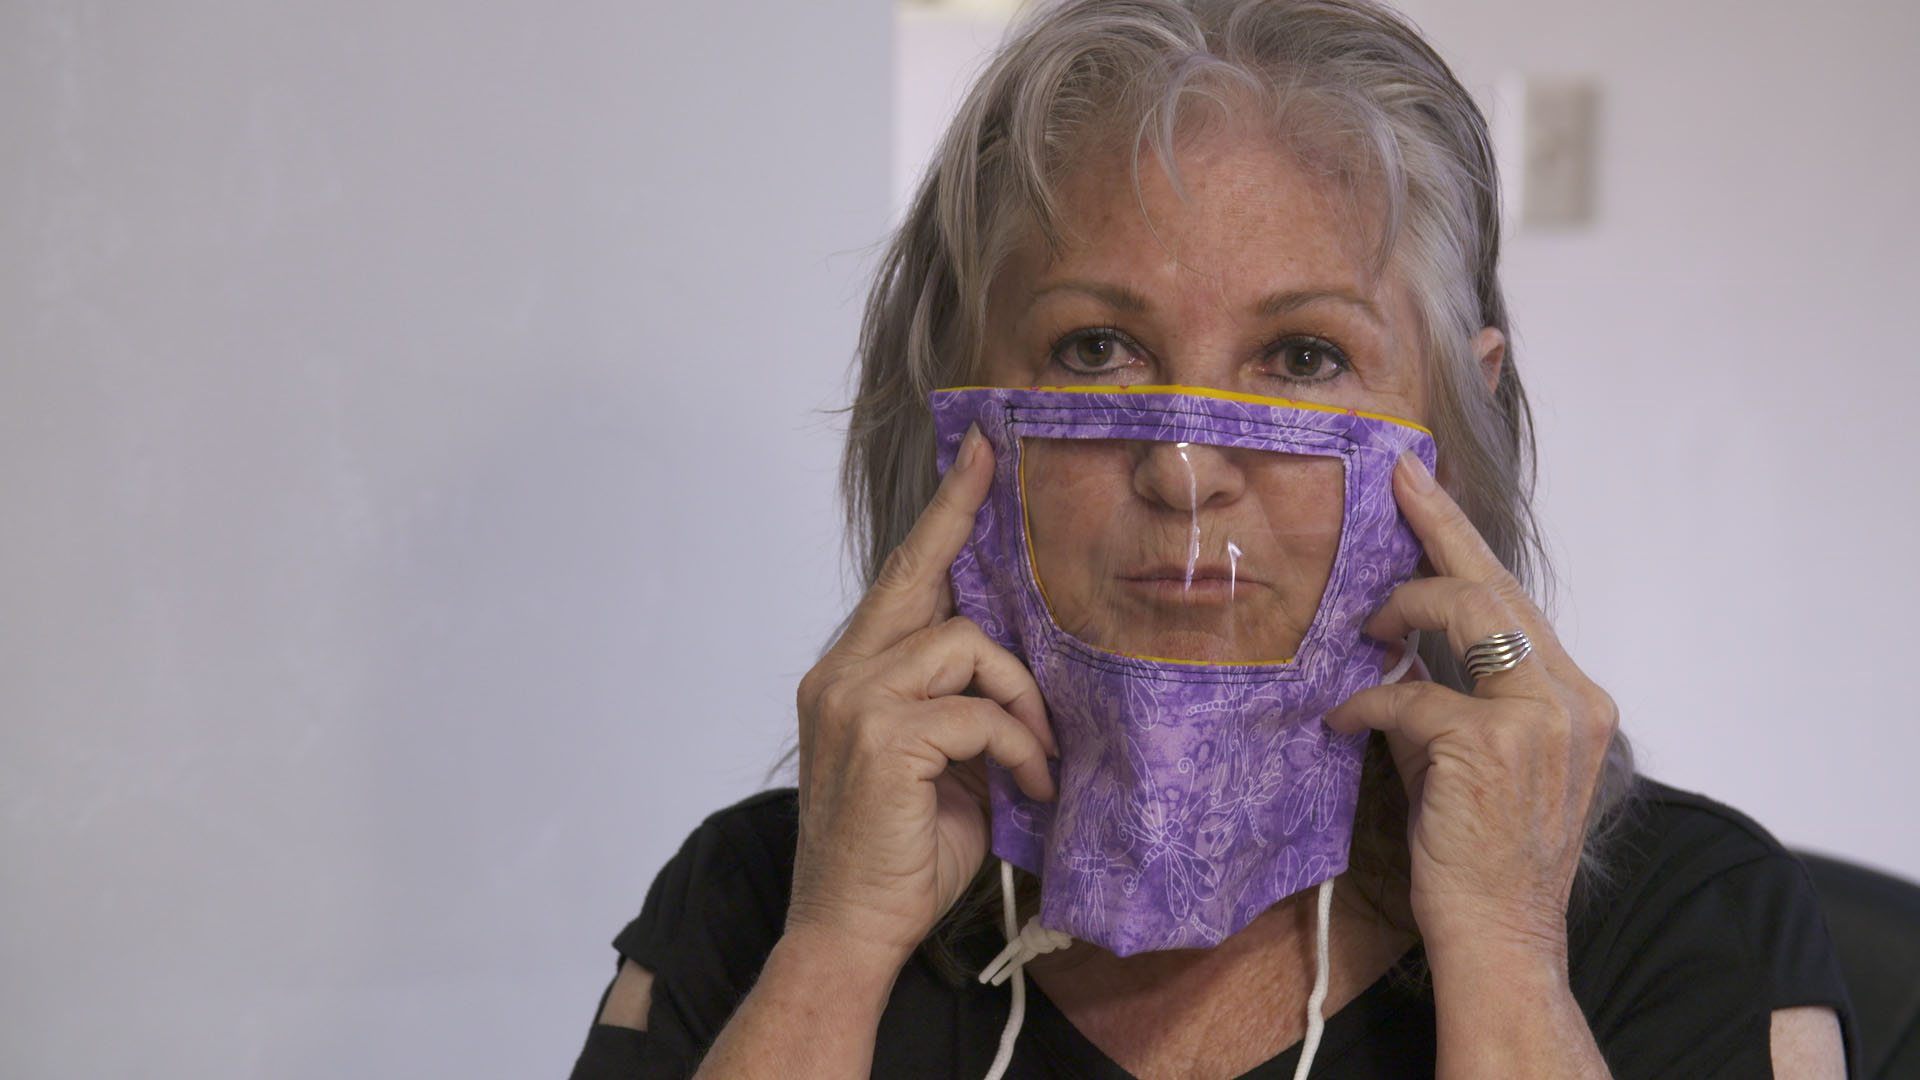 Terri Rice with Adult Loss of Hearing Association demonstrates how to wear a mask she designed to increase lip reading abilities.